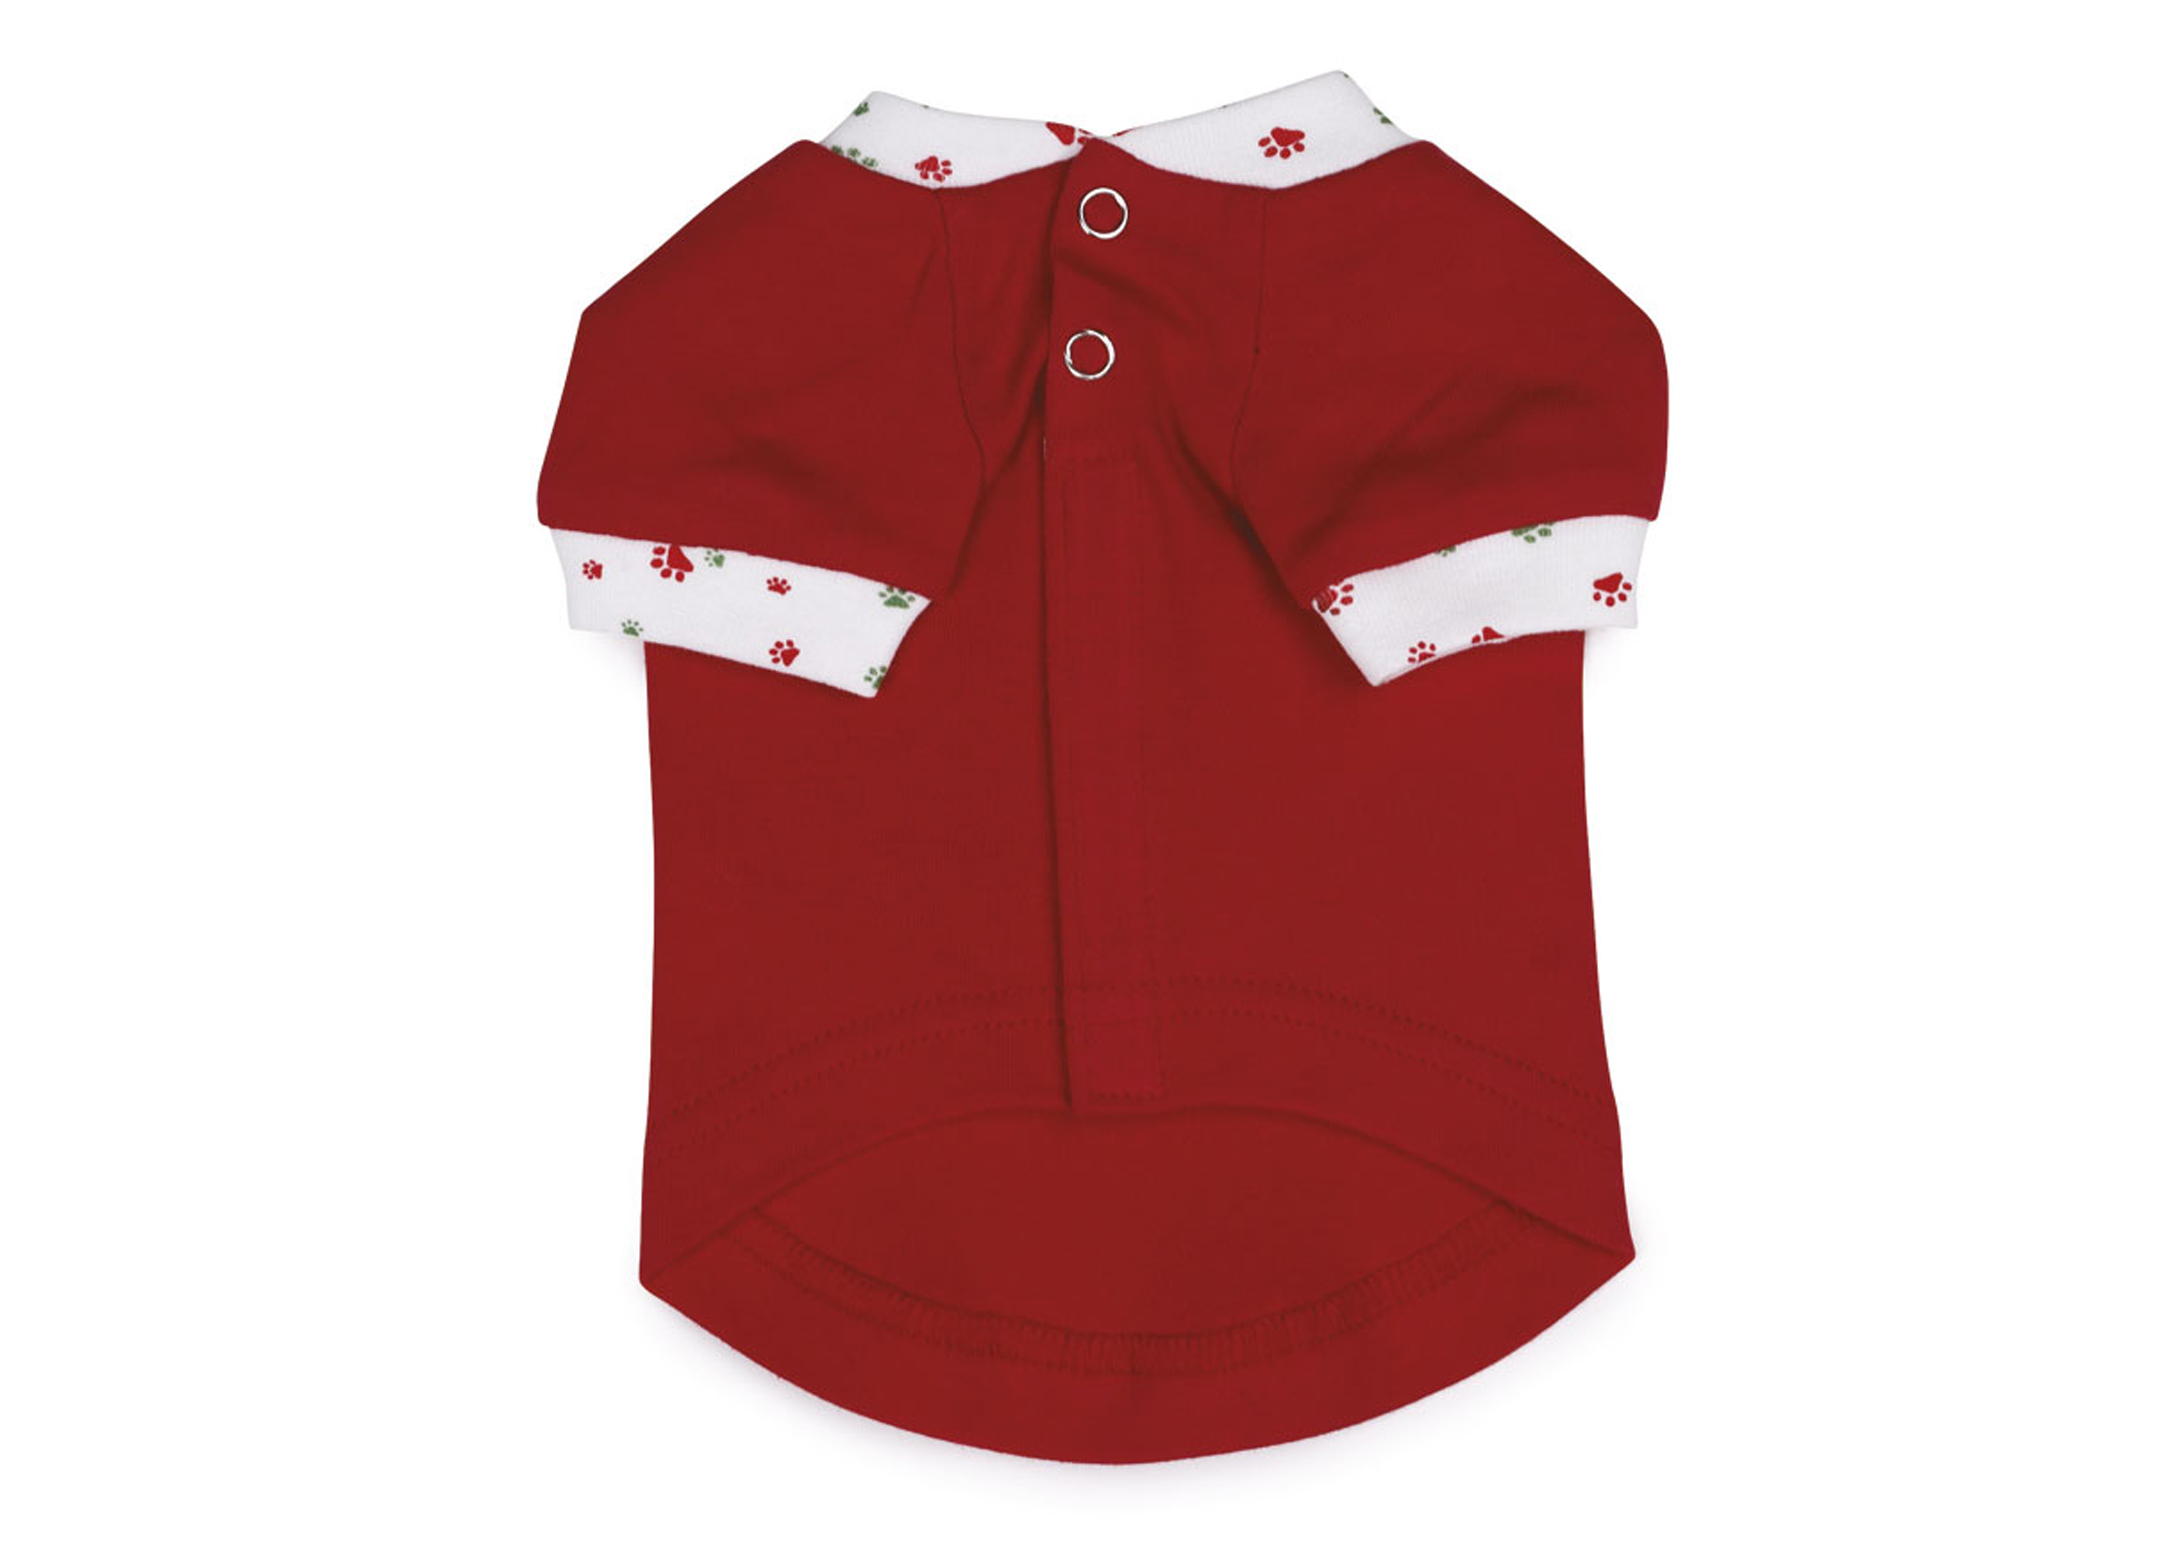 East Side Collection Xmas Santa's Babie Onesie Shirt Vêtements Pour Chiens